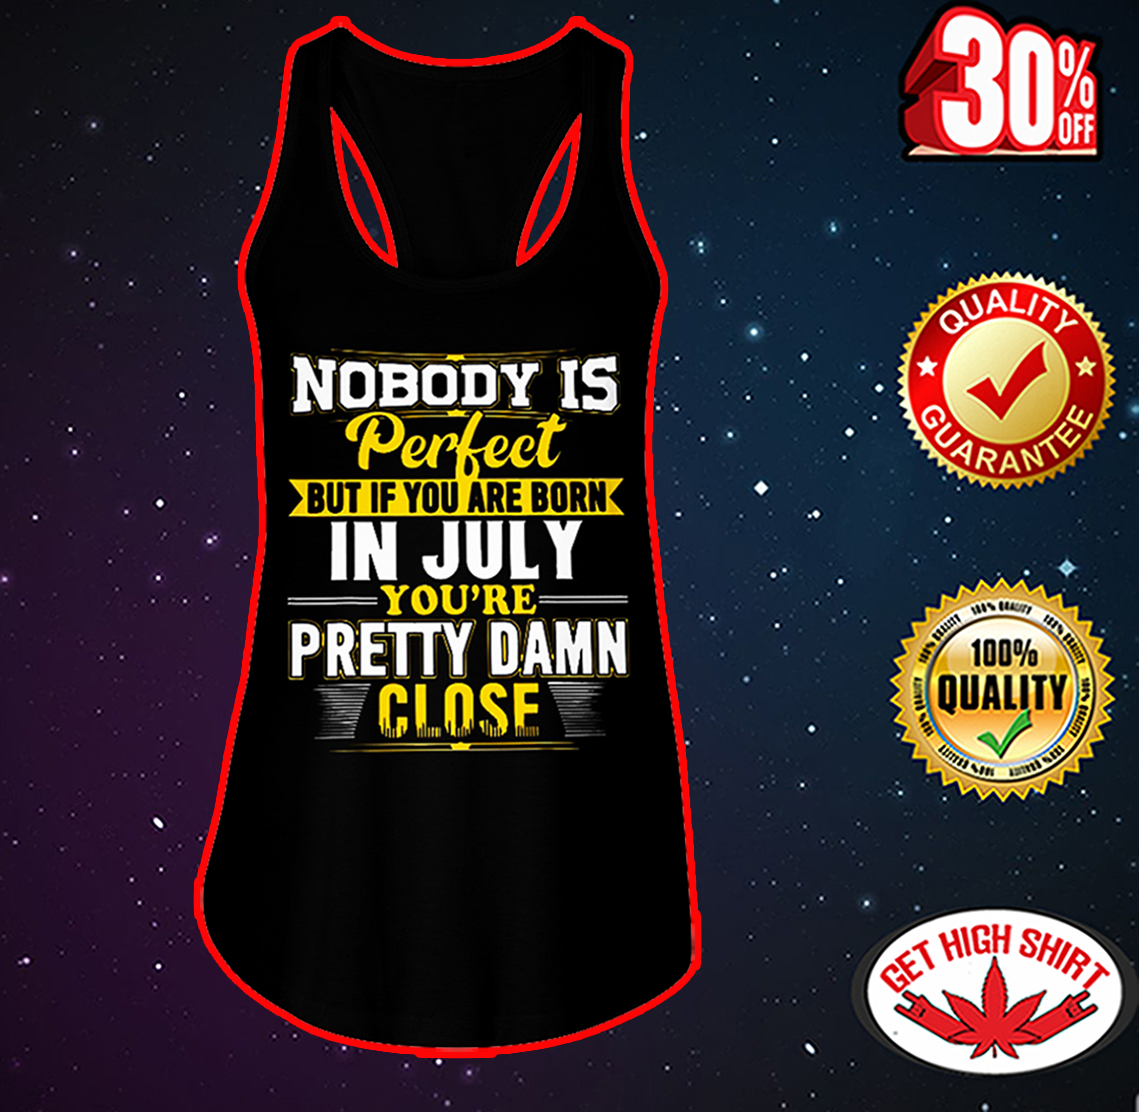 Nobody is perfect but if you are born in July you're pretty damn close flowy tank